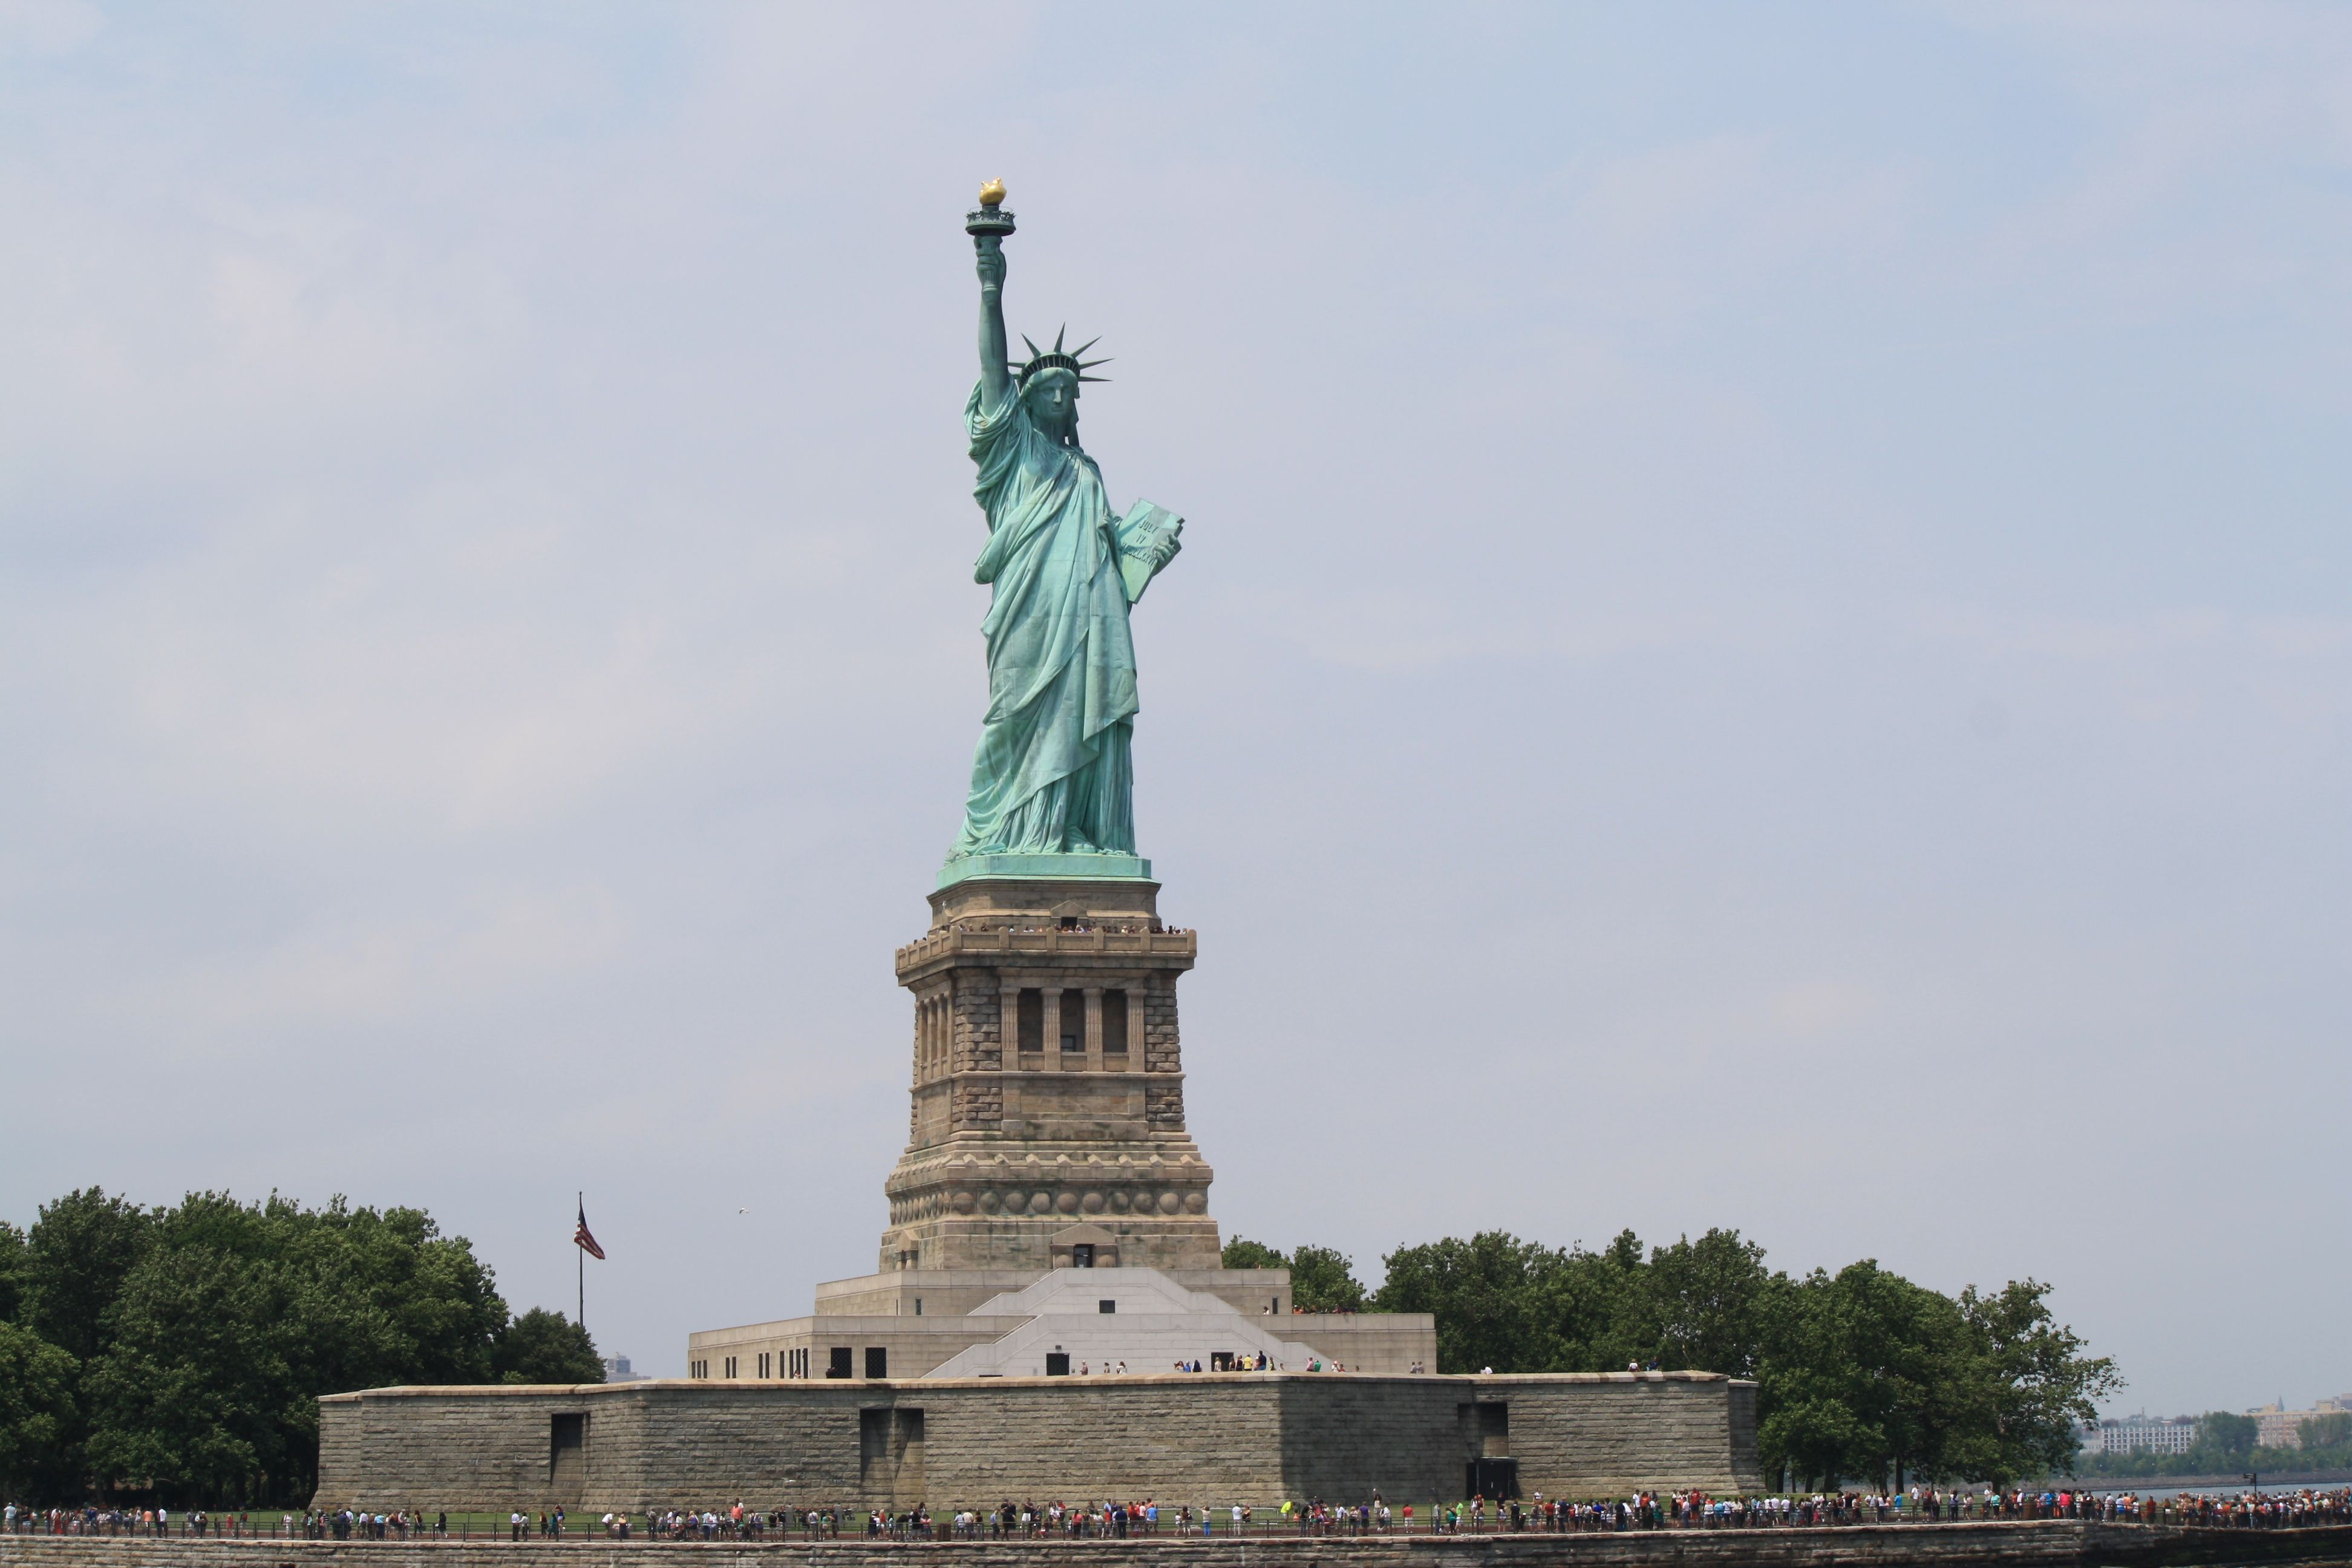 The Statue of Liberty (Liberty Enlightening the World